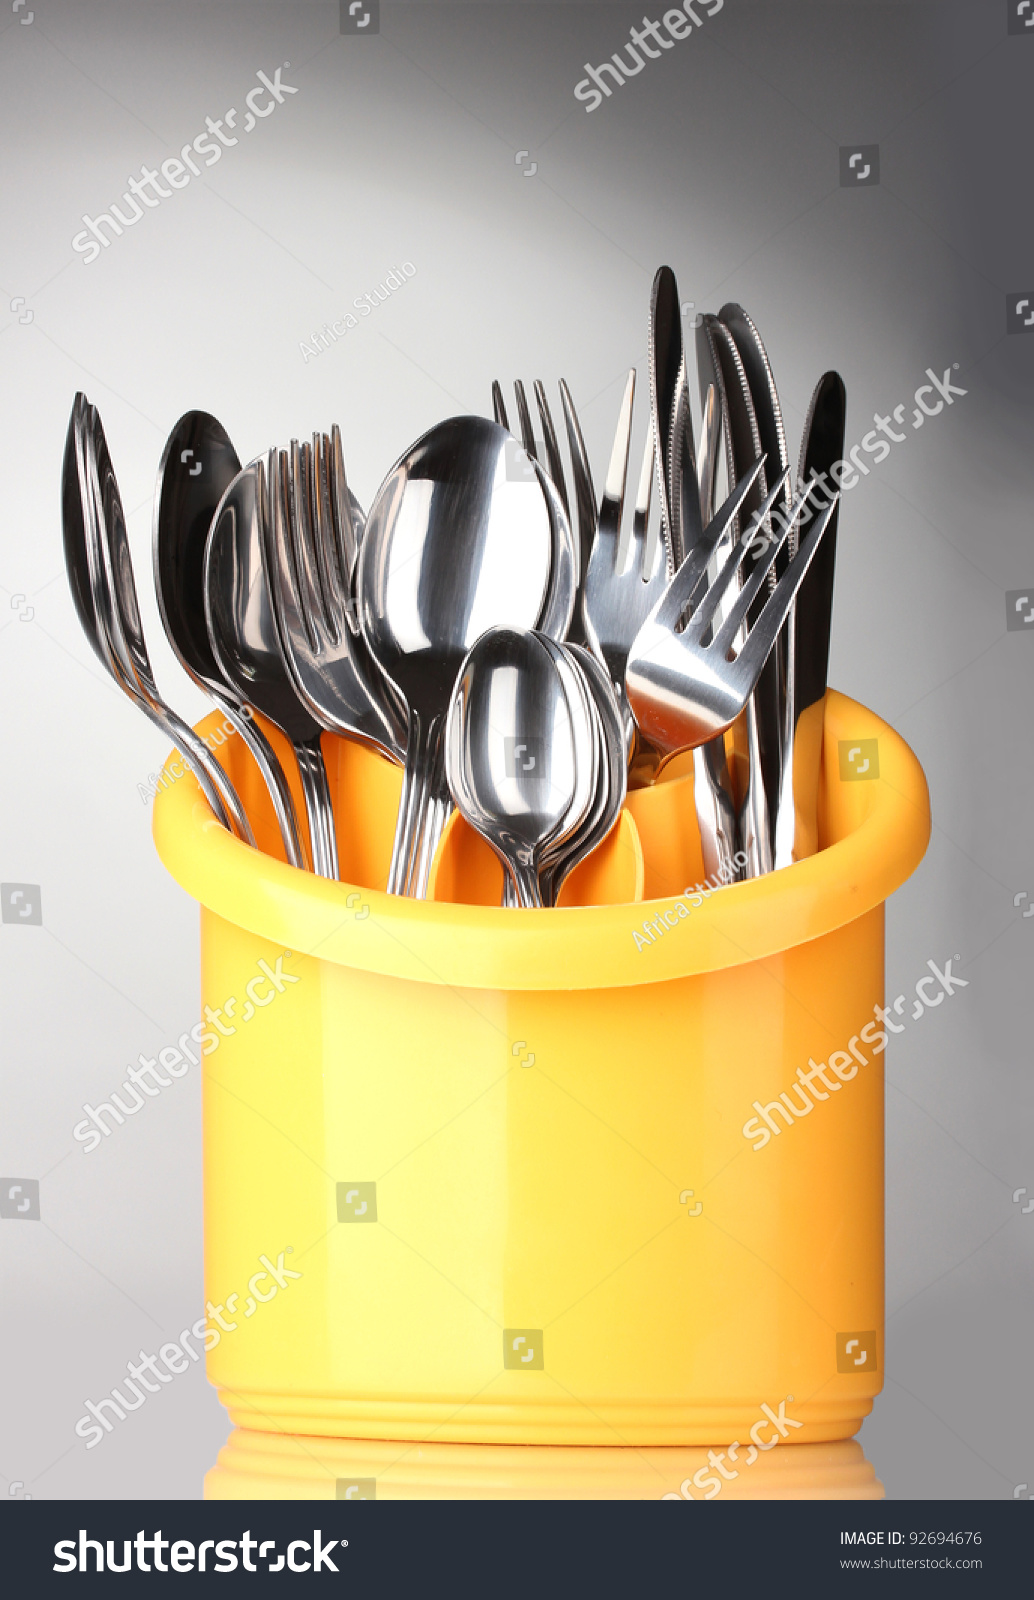 kitchen cutlery knives forks and spoons in yellow stand black and white clip art kitchen printable fork knife